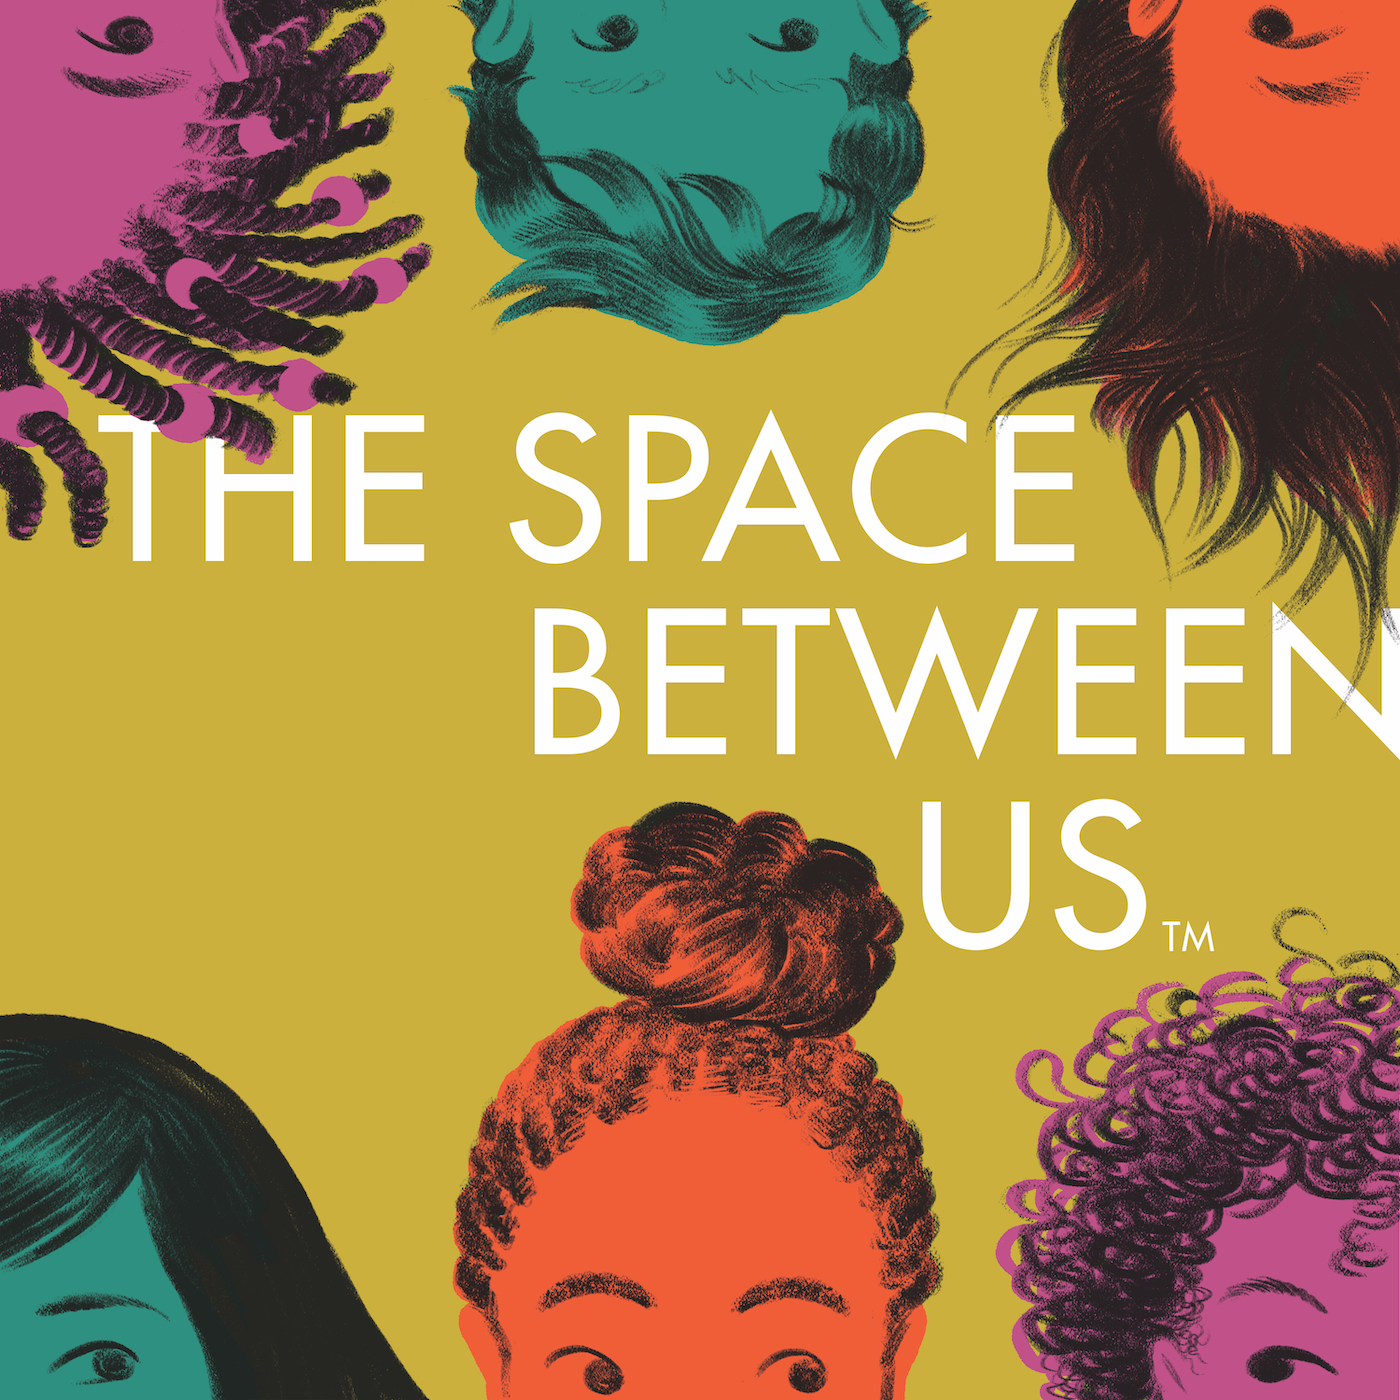 The Space Between Us - krystlecobran.com - podcast cover art by Eleanor Davis